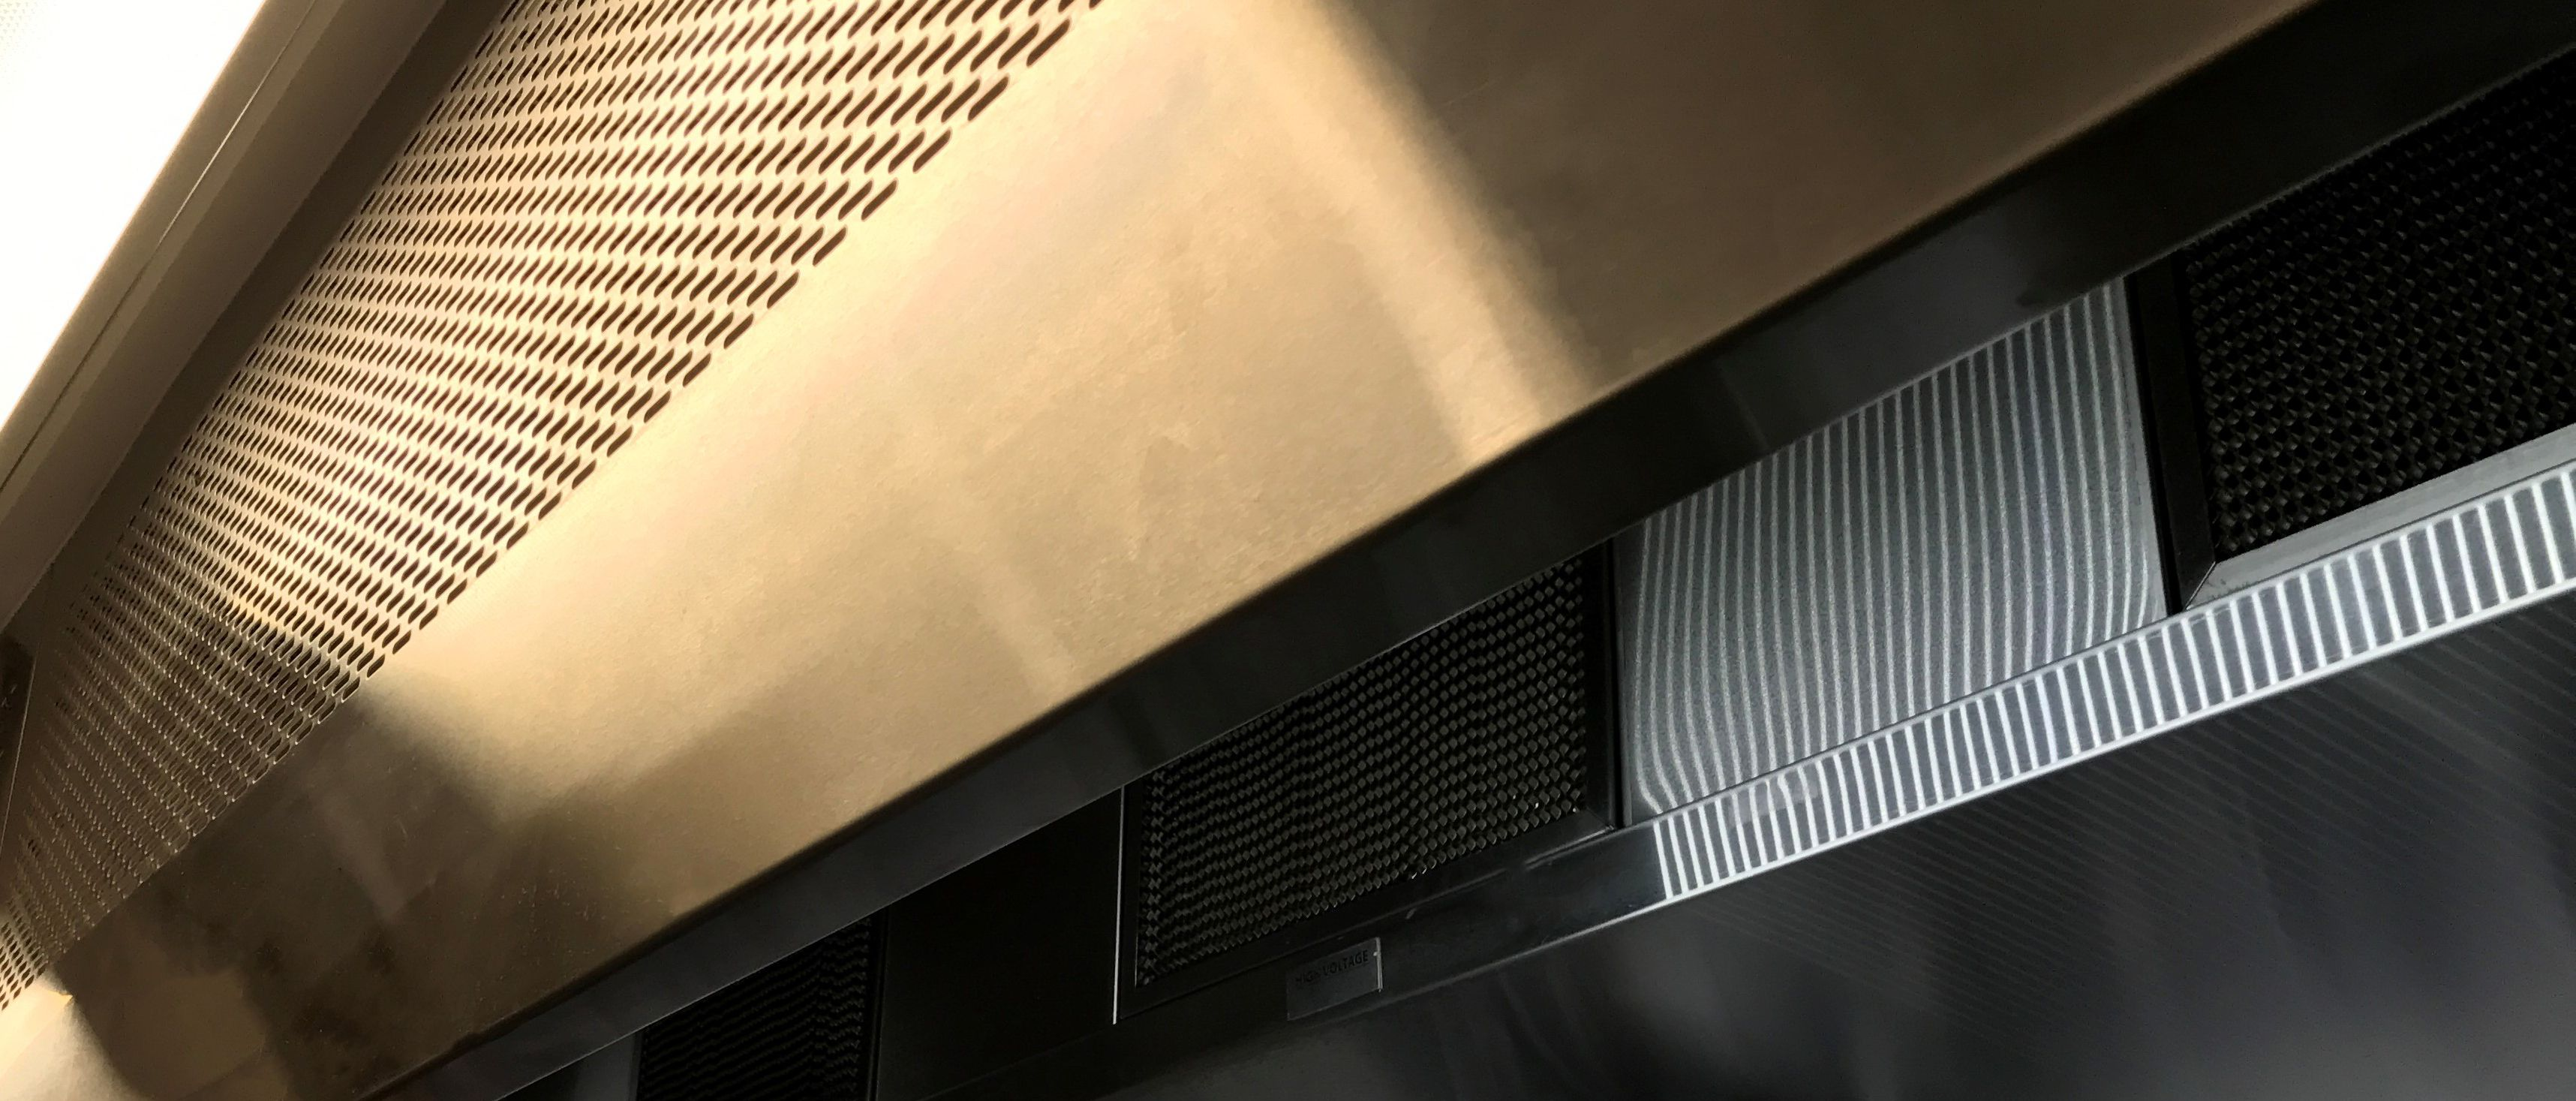 Hce Series Modular Hoods Are Now Available Off The Shelf Efficient Design With Little Lead Time And More Cost Effe Kitchen Exhaust Exhaust Hood Custom Kitchen